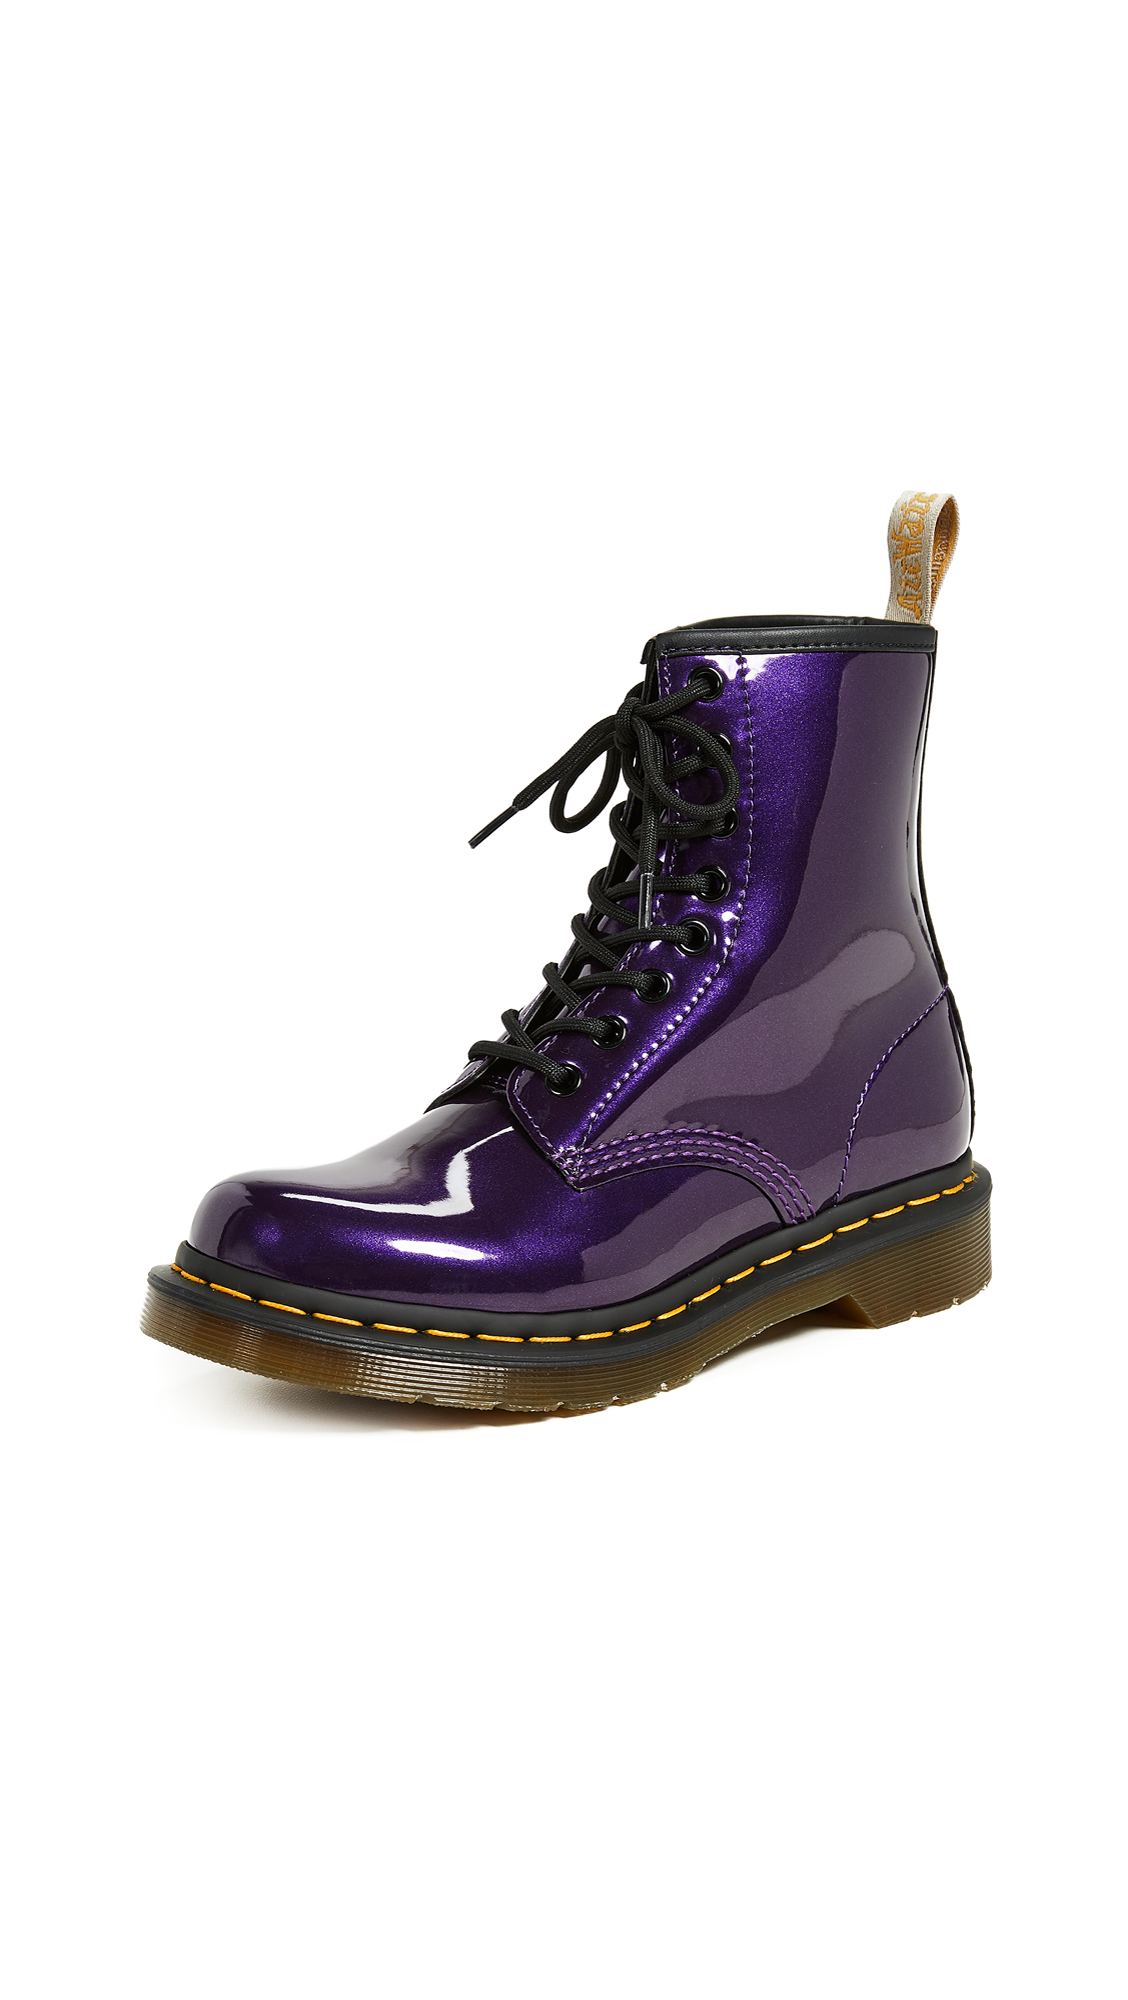 Dr. Martens 1460 Vegan Chrome 8 Eye Boots In Dark Purple